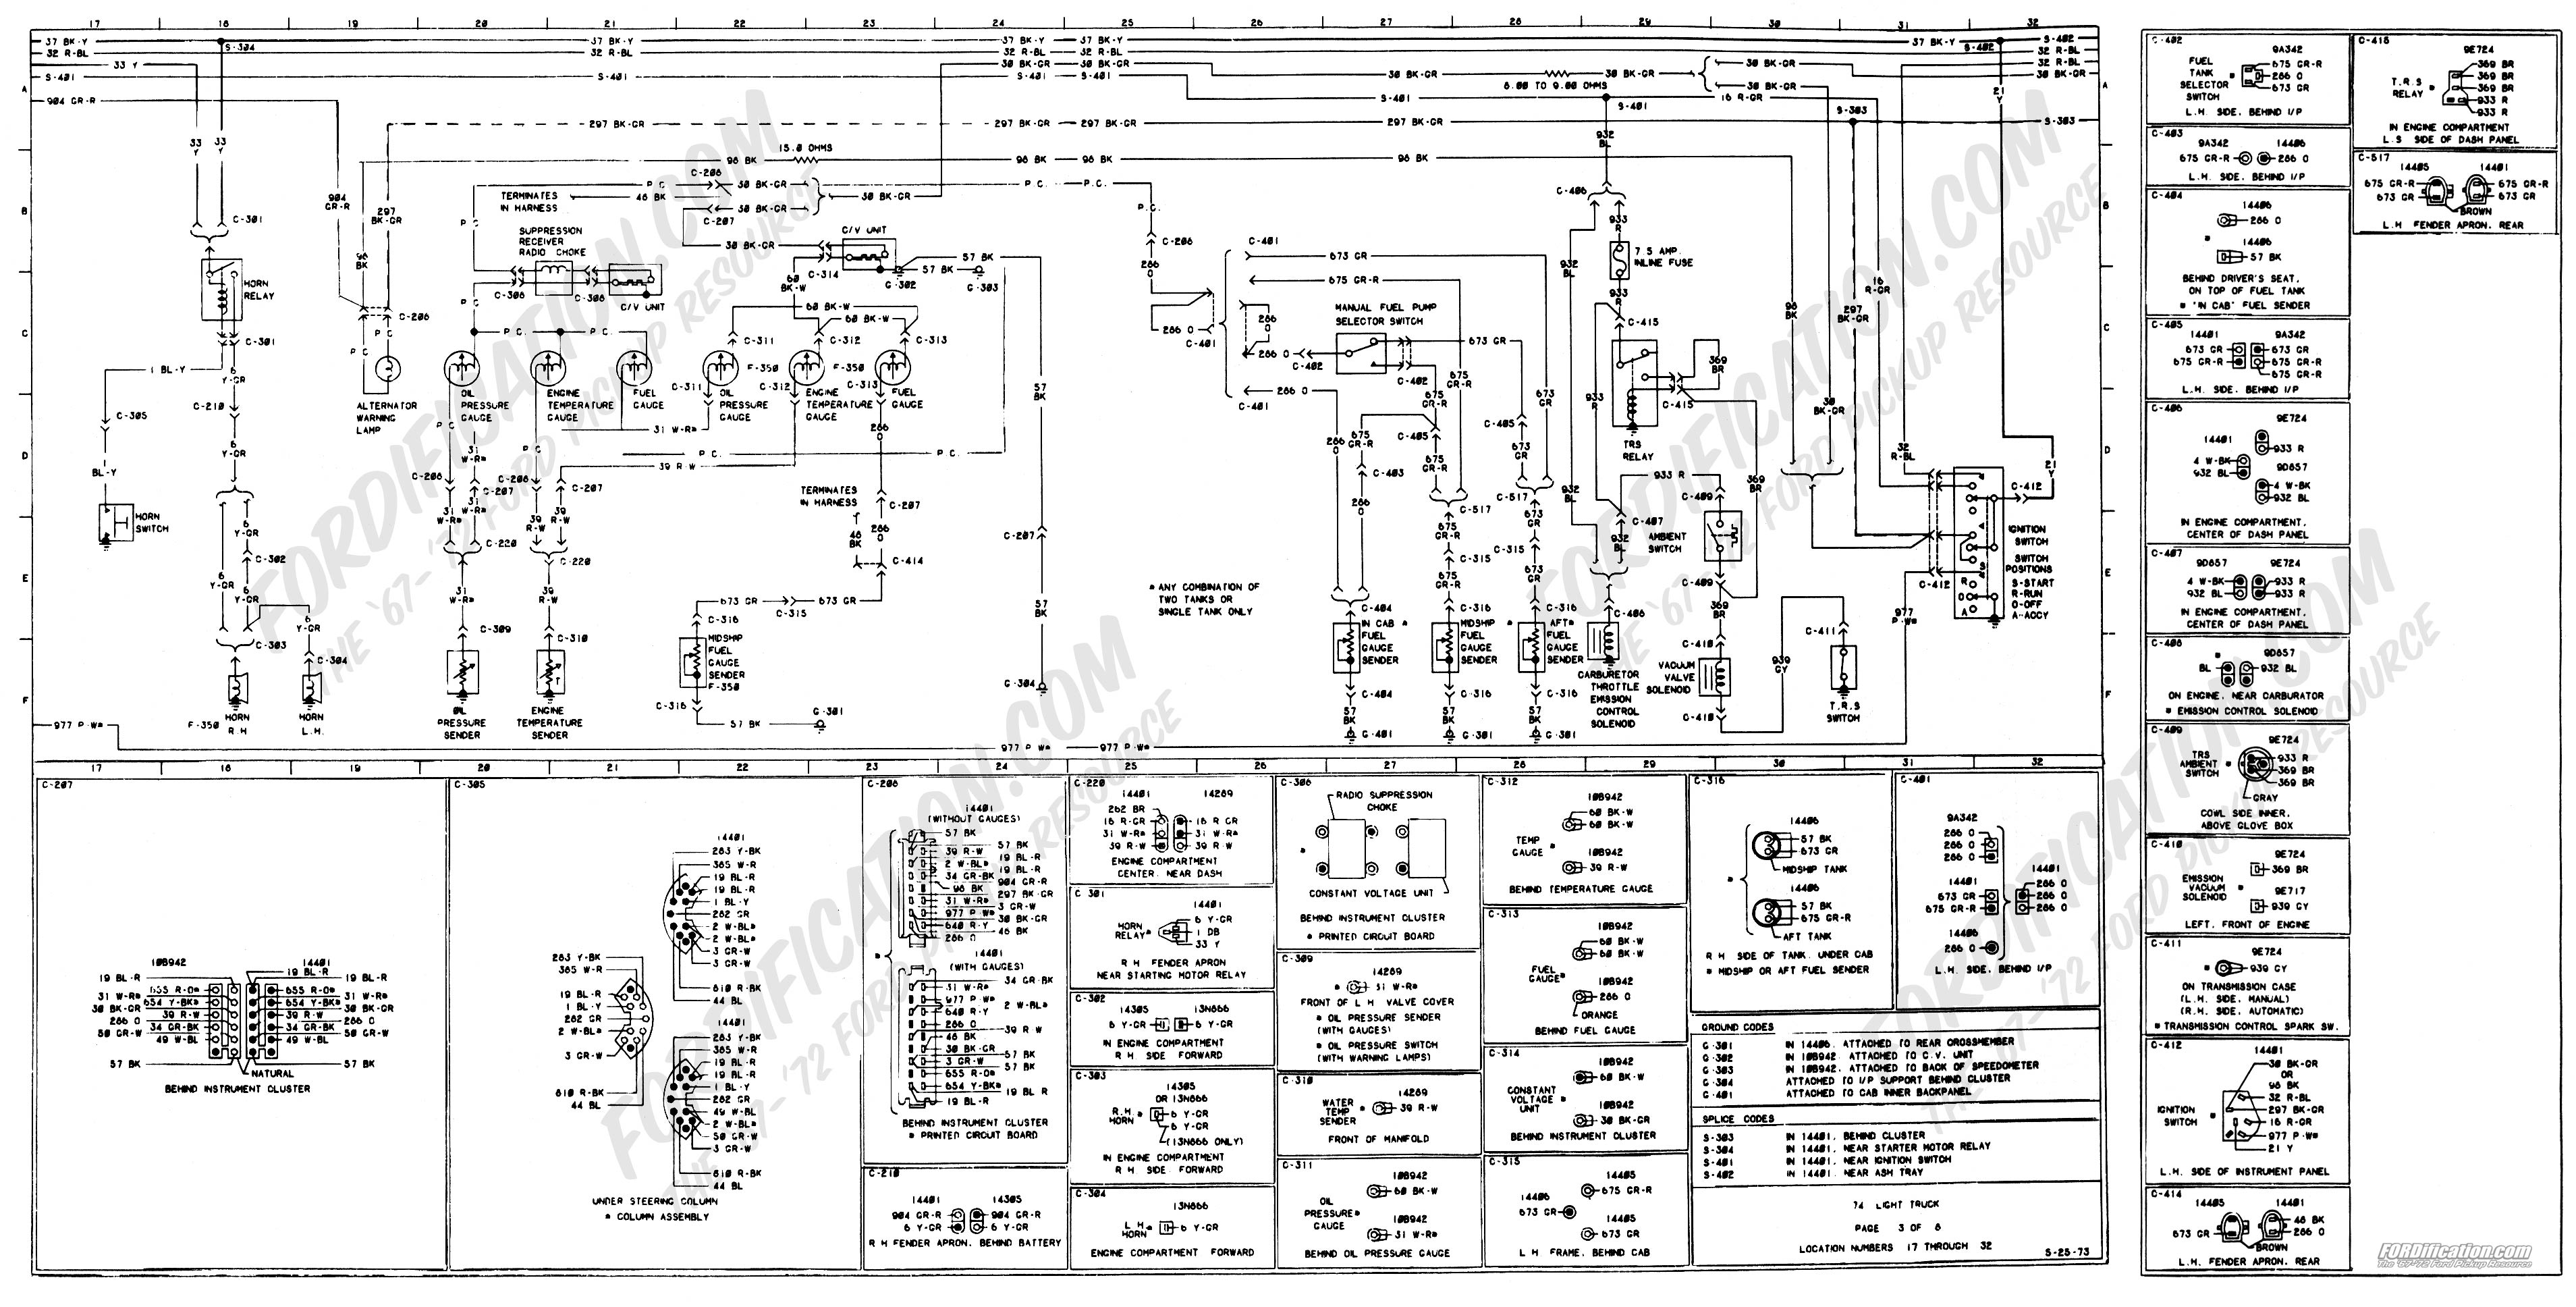 wiring_74master_3of8 1973 1979 ford truck wiring diagrams & schematics fordification net 1971 ford f250 wiring diagram at mr168.co